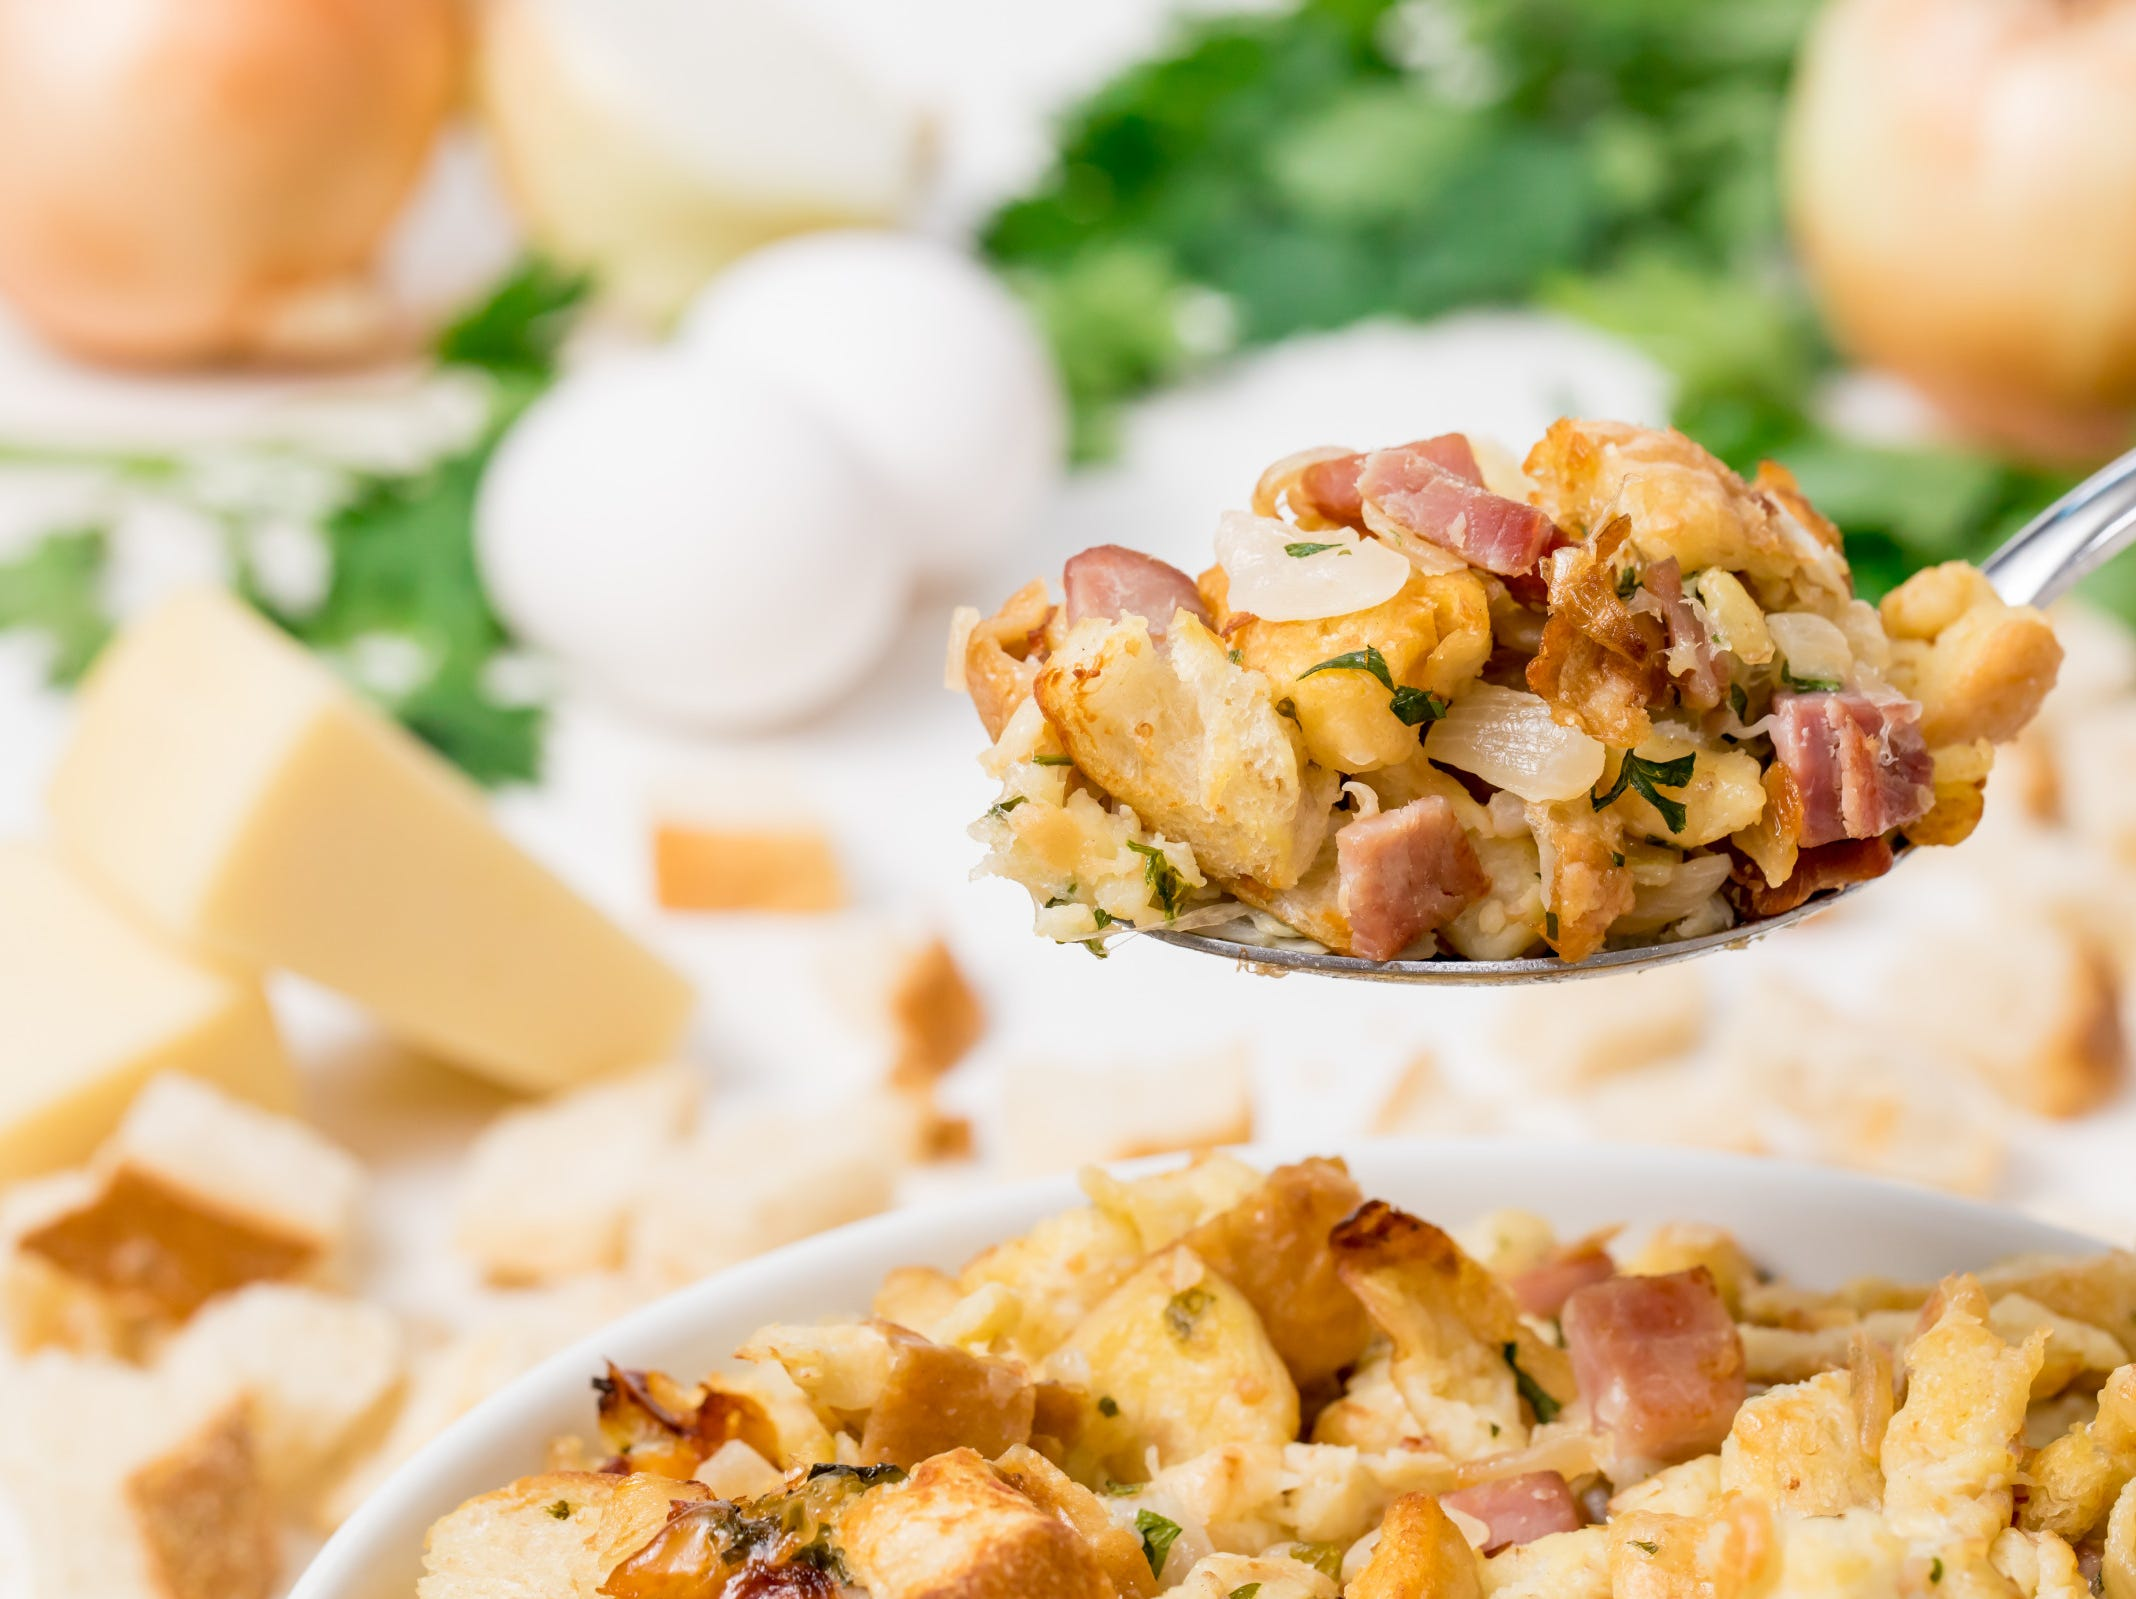 Need a new stuffing recipe to serve next to your Thanksgiving turkey? Grab your menu planner because we've got the perfect stuffing recipe for you! Our ham, Gruyère and onion stuffing, inspired by My Recipes, is a scrumptious sourdough stuffing featuring flavorful ingredients that bring new life to the traditional holiday side dish.